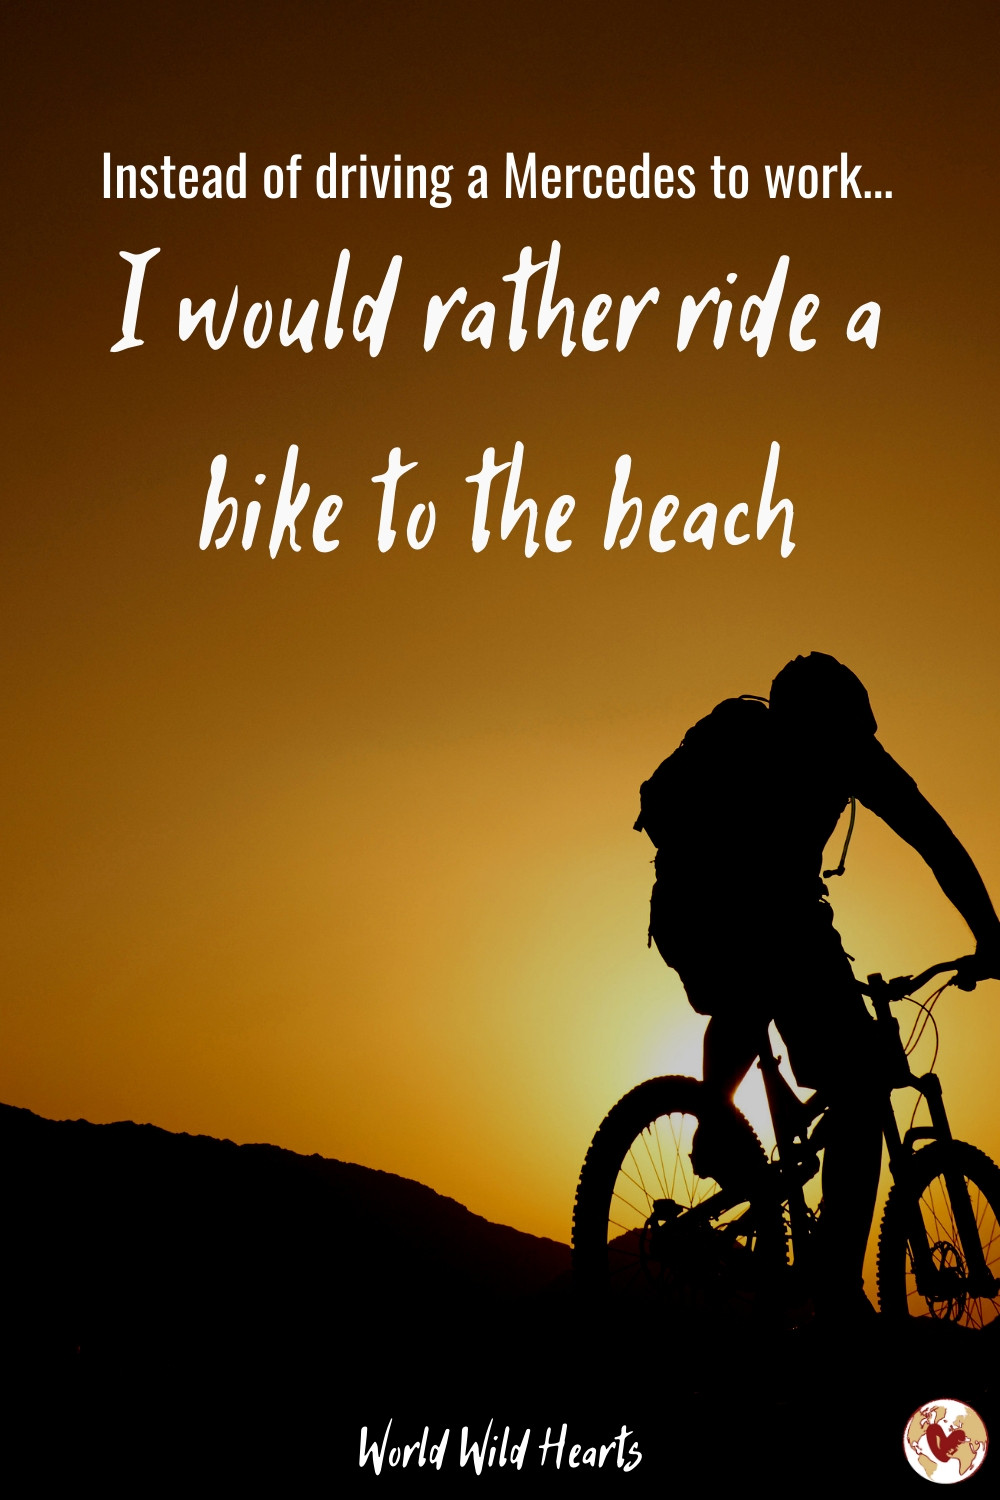 I would rather be quote